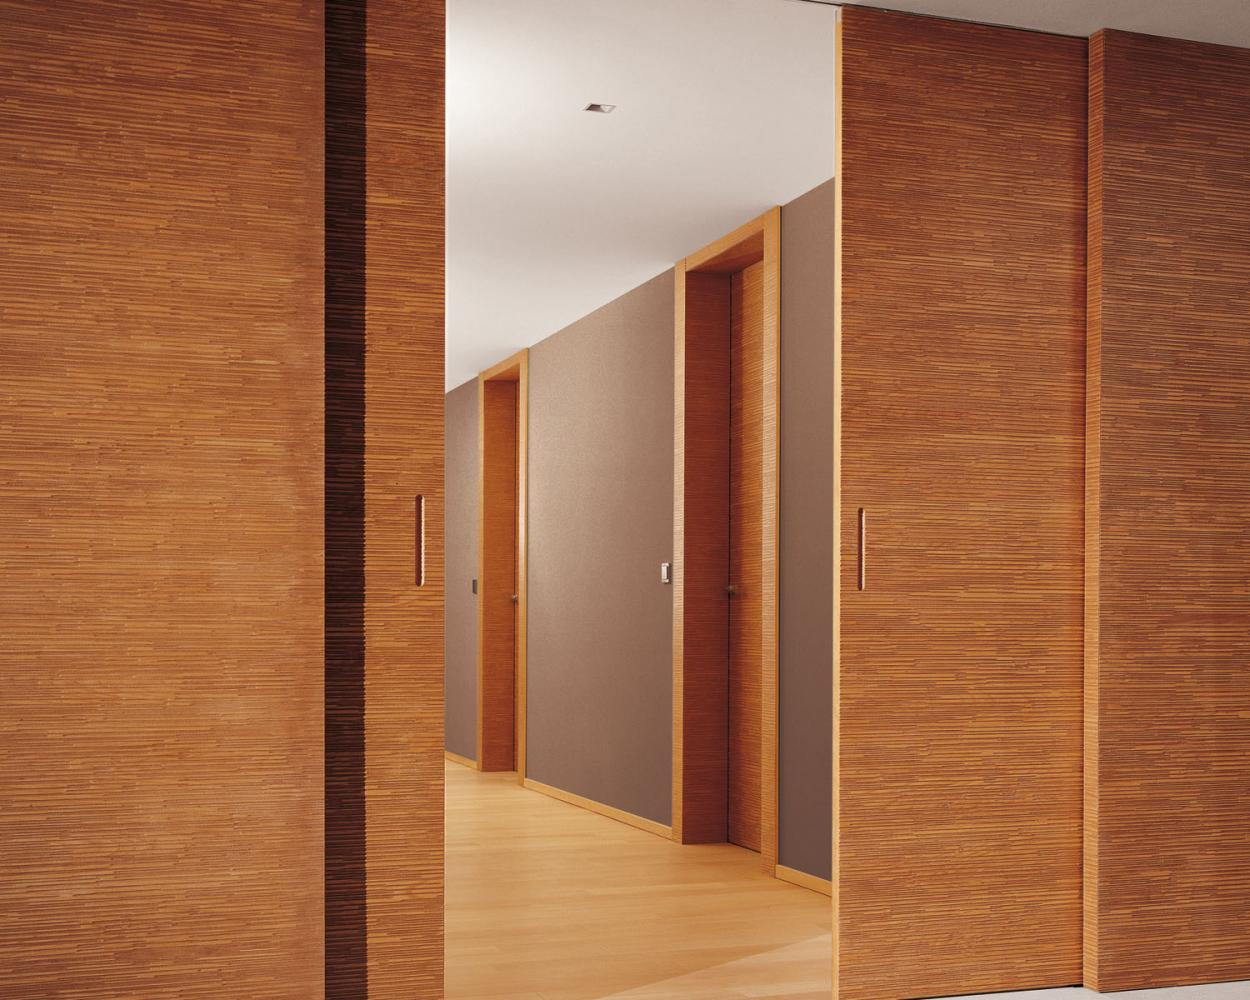 Laurameroni funishing a luxury modern corporate office in Bolzano for an exlusive interior design and working space